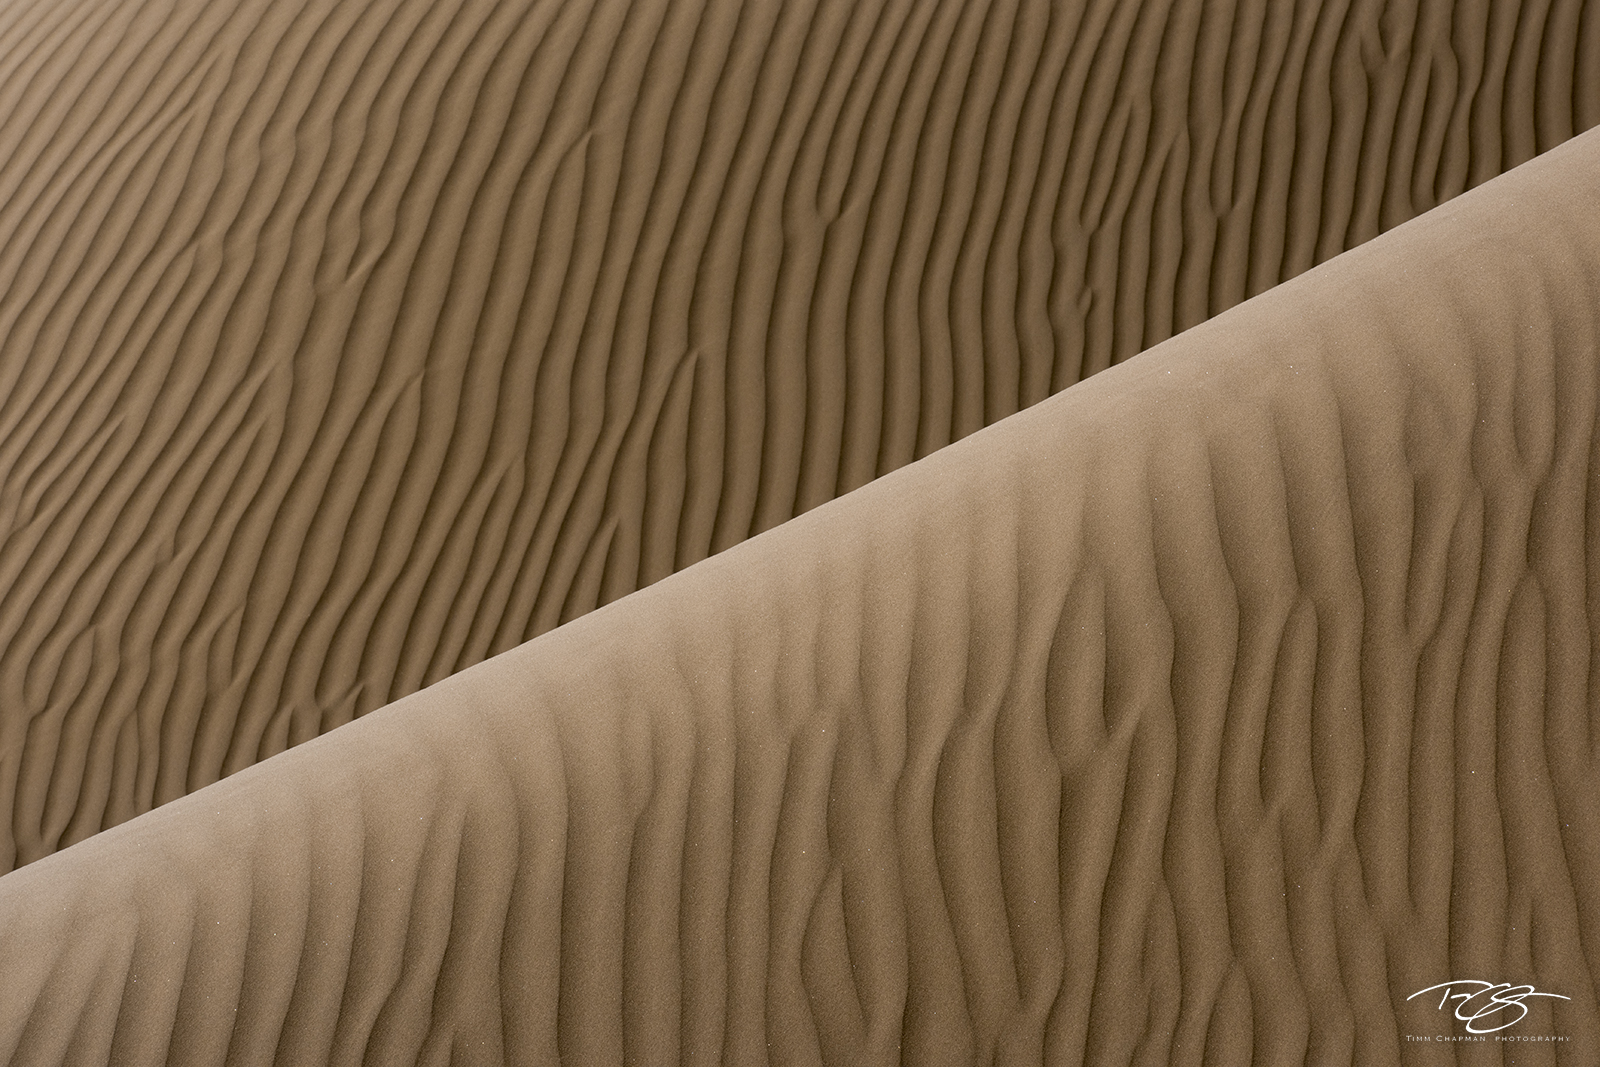 gobi desert, china, abstract, patterns, sand dune, sand, dune, desert, furrowed, wrinkles, wrinkled, gobi, photo